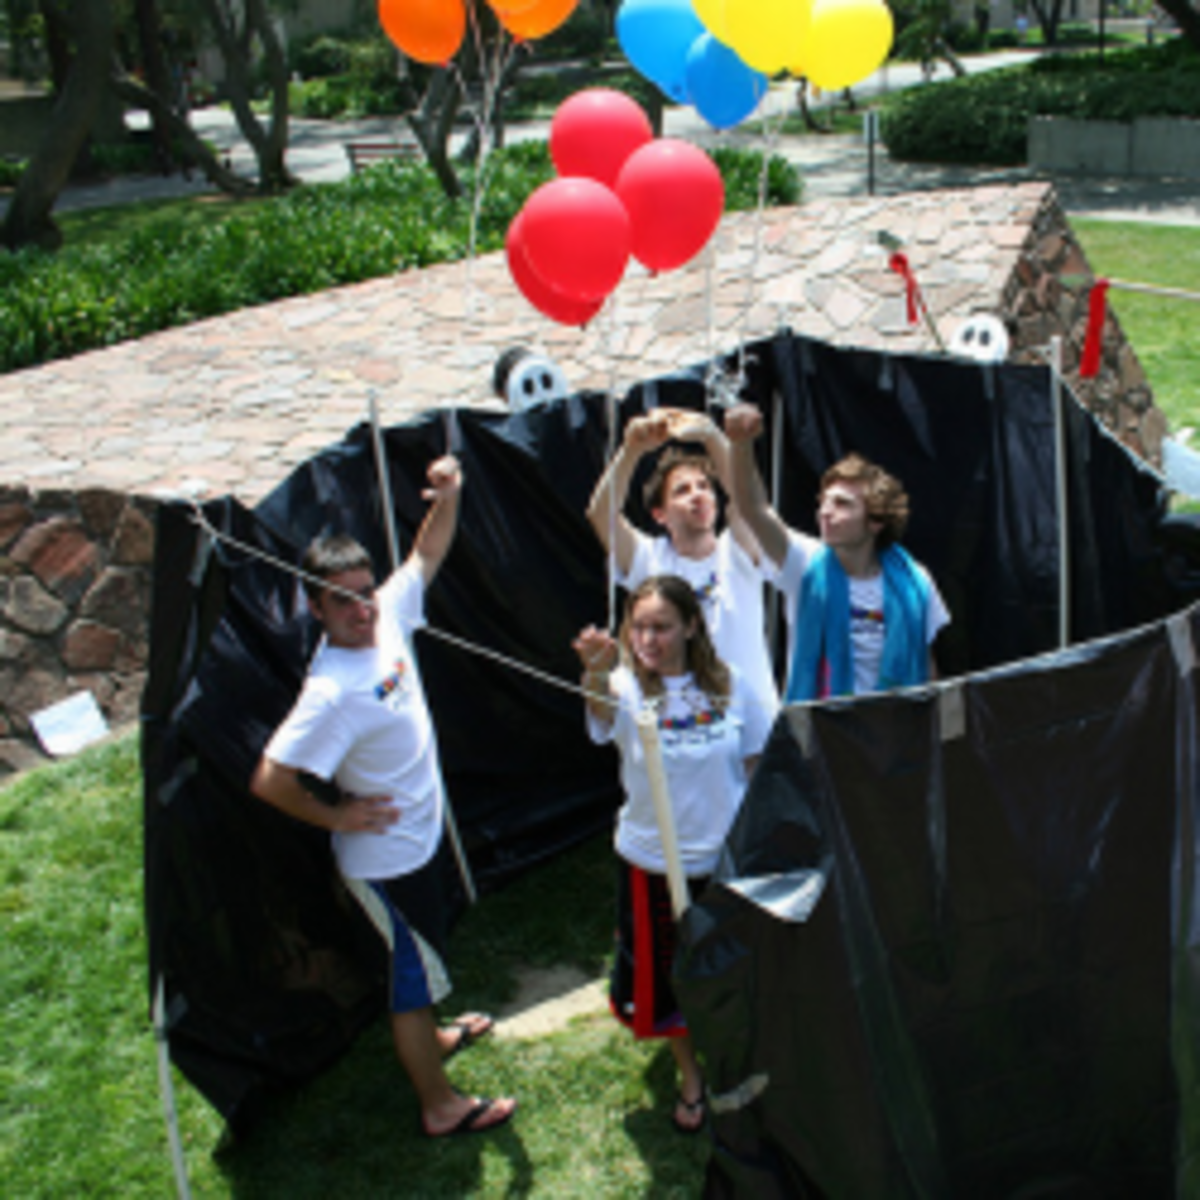 Creative party game ideas activities competitions for for Fun parties for adults